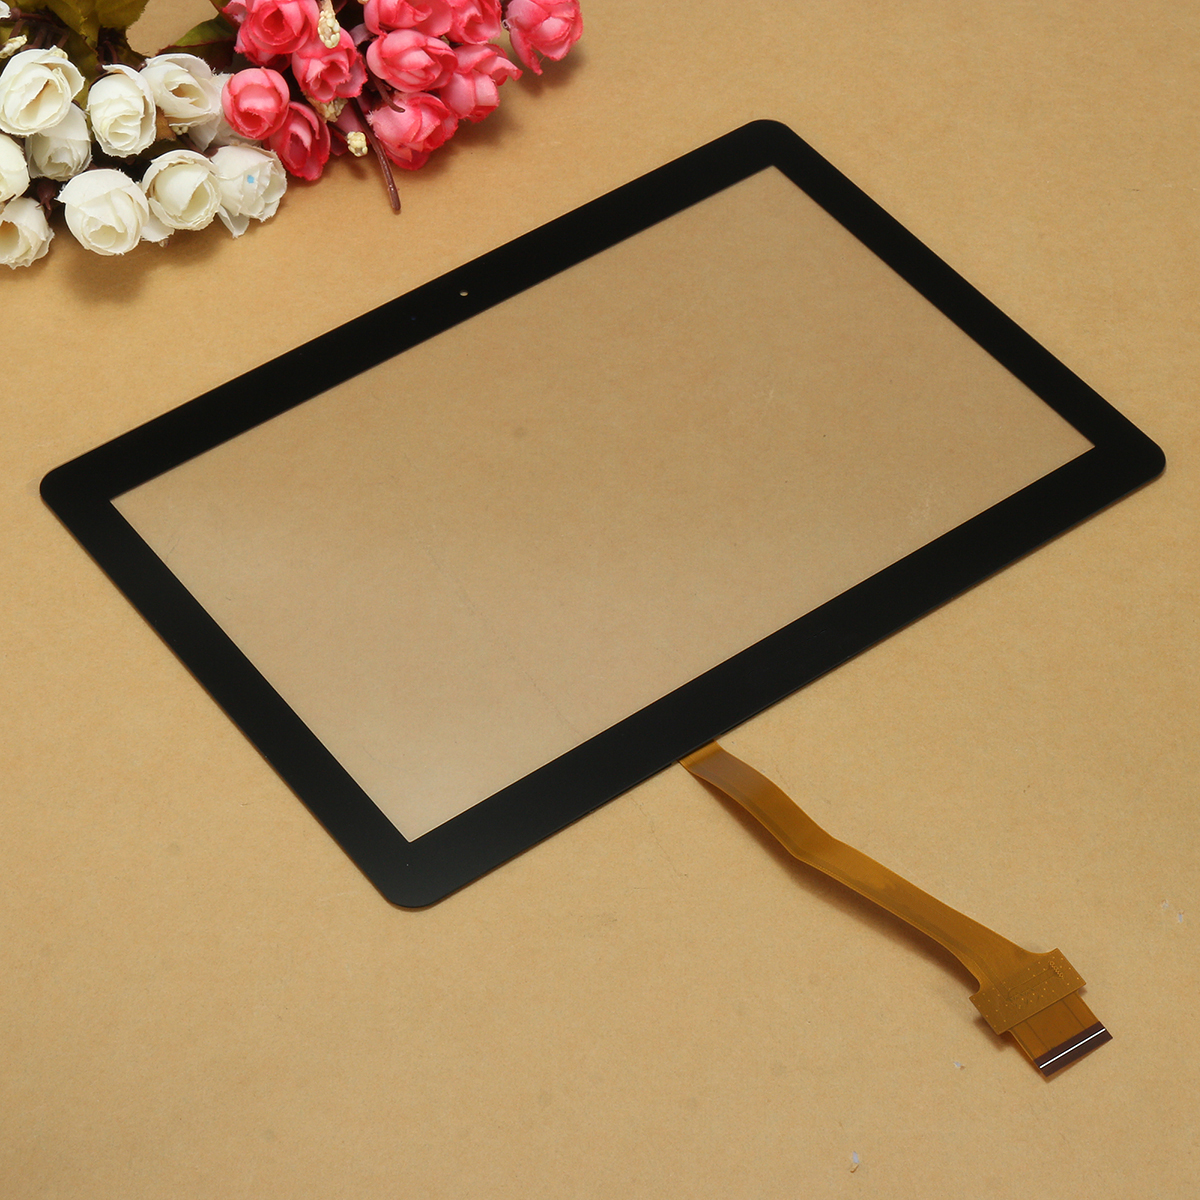 Touch Screen Replacement Digitizer Panel Repair Tool For Samsung Galaxy Tab 2 P5110 P5100